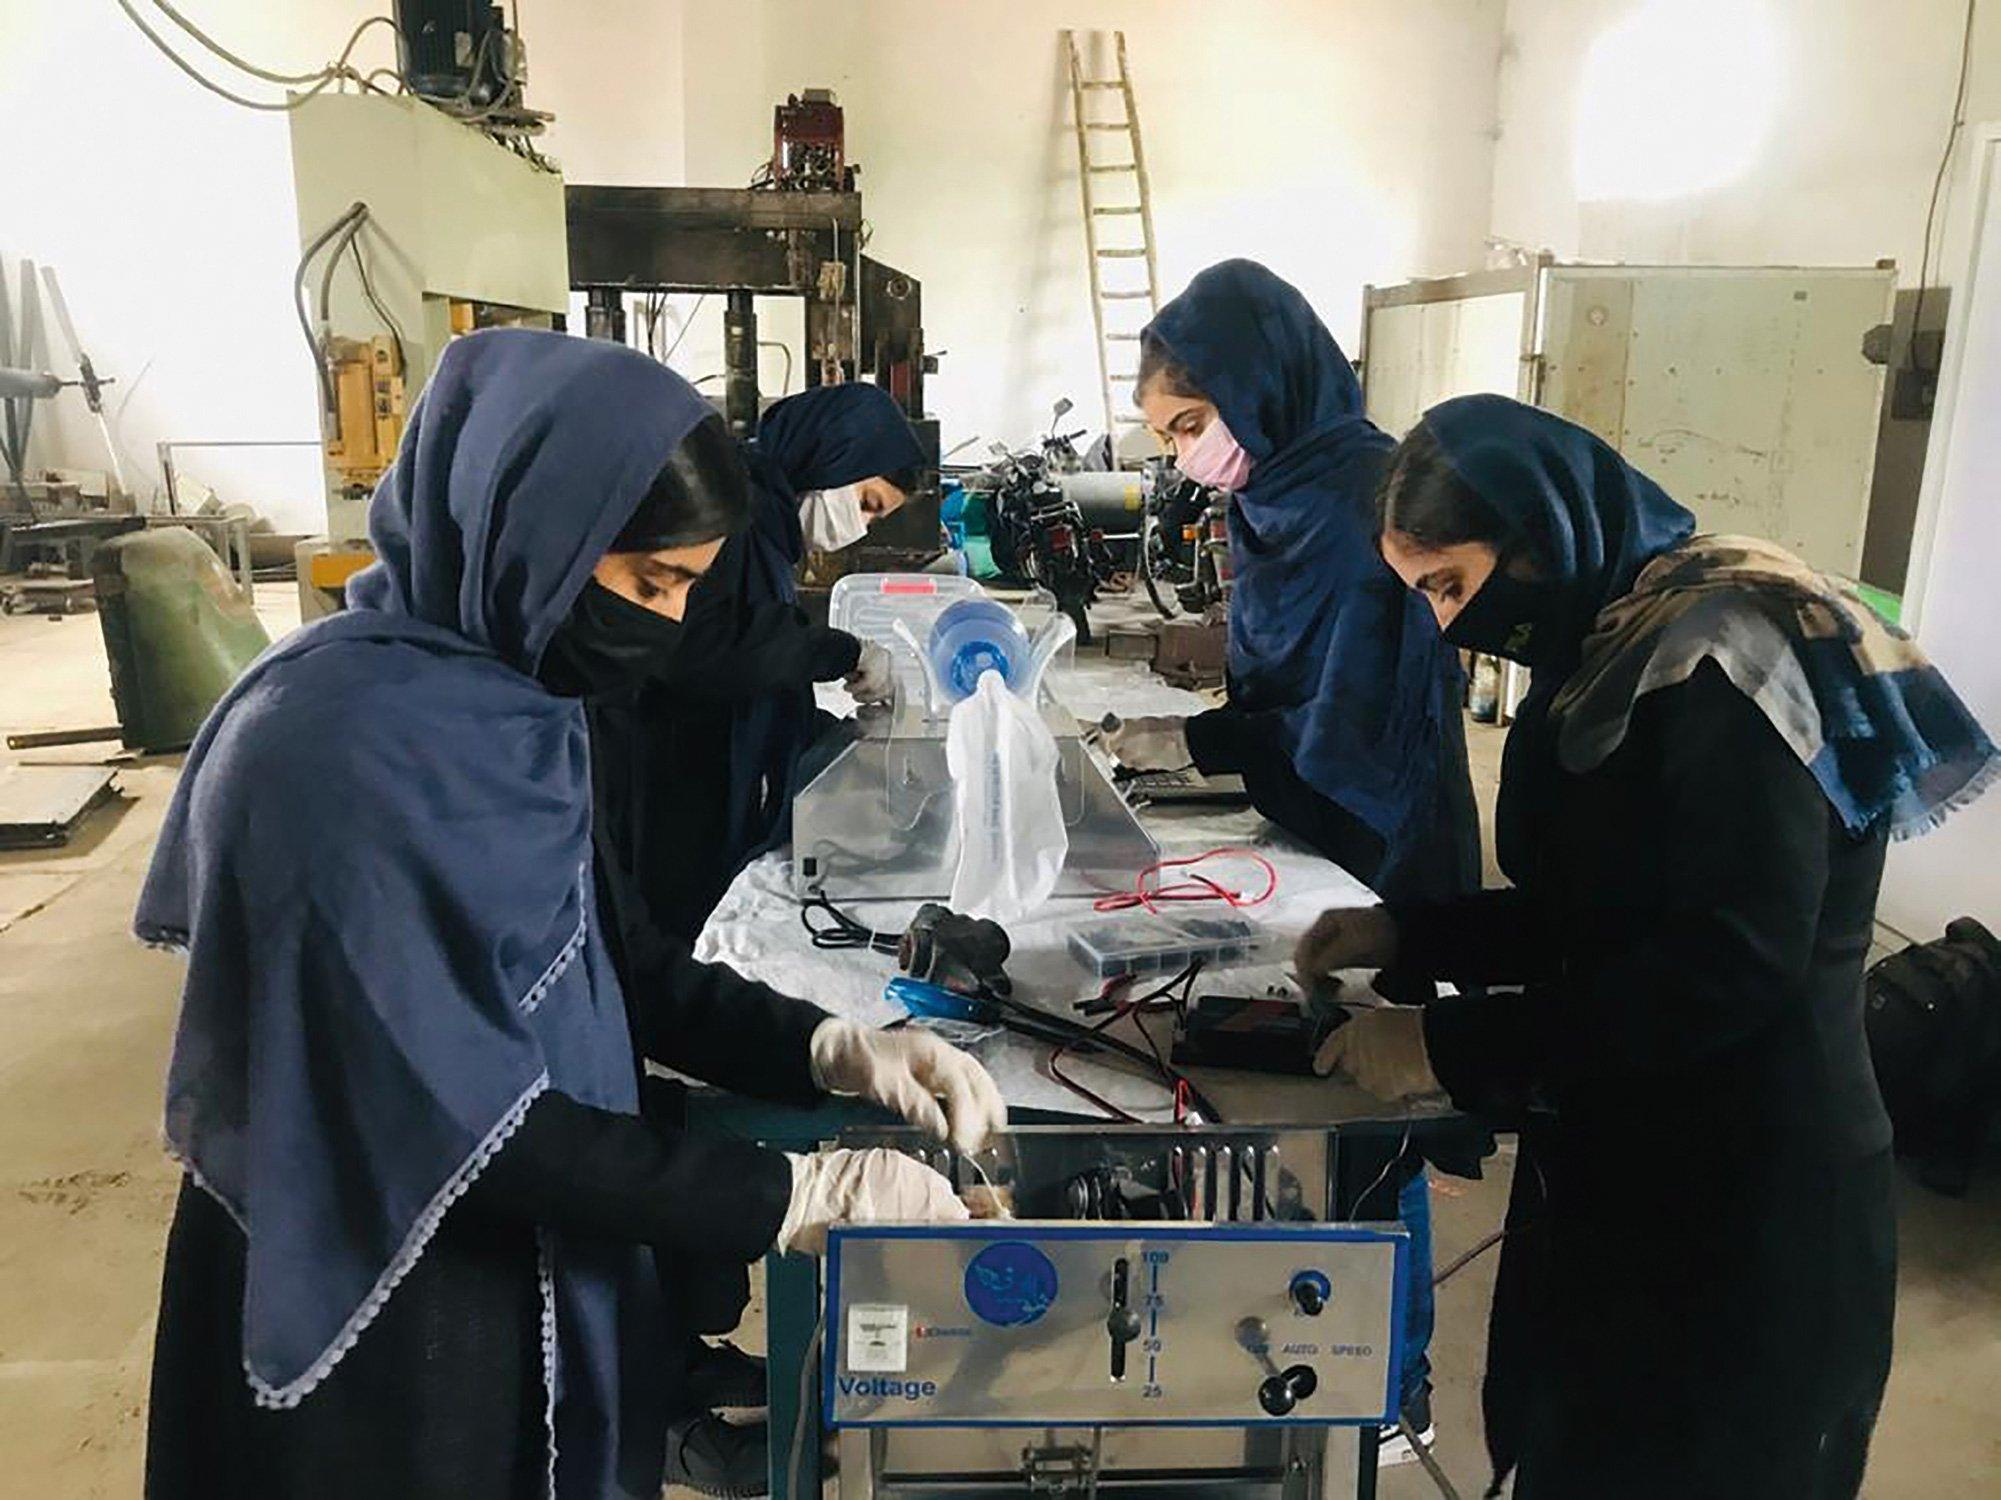 With bike chains and car parts Afghan girls build ventilators - GLOBAL HEROES MAGAZINE